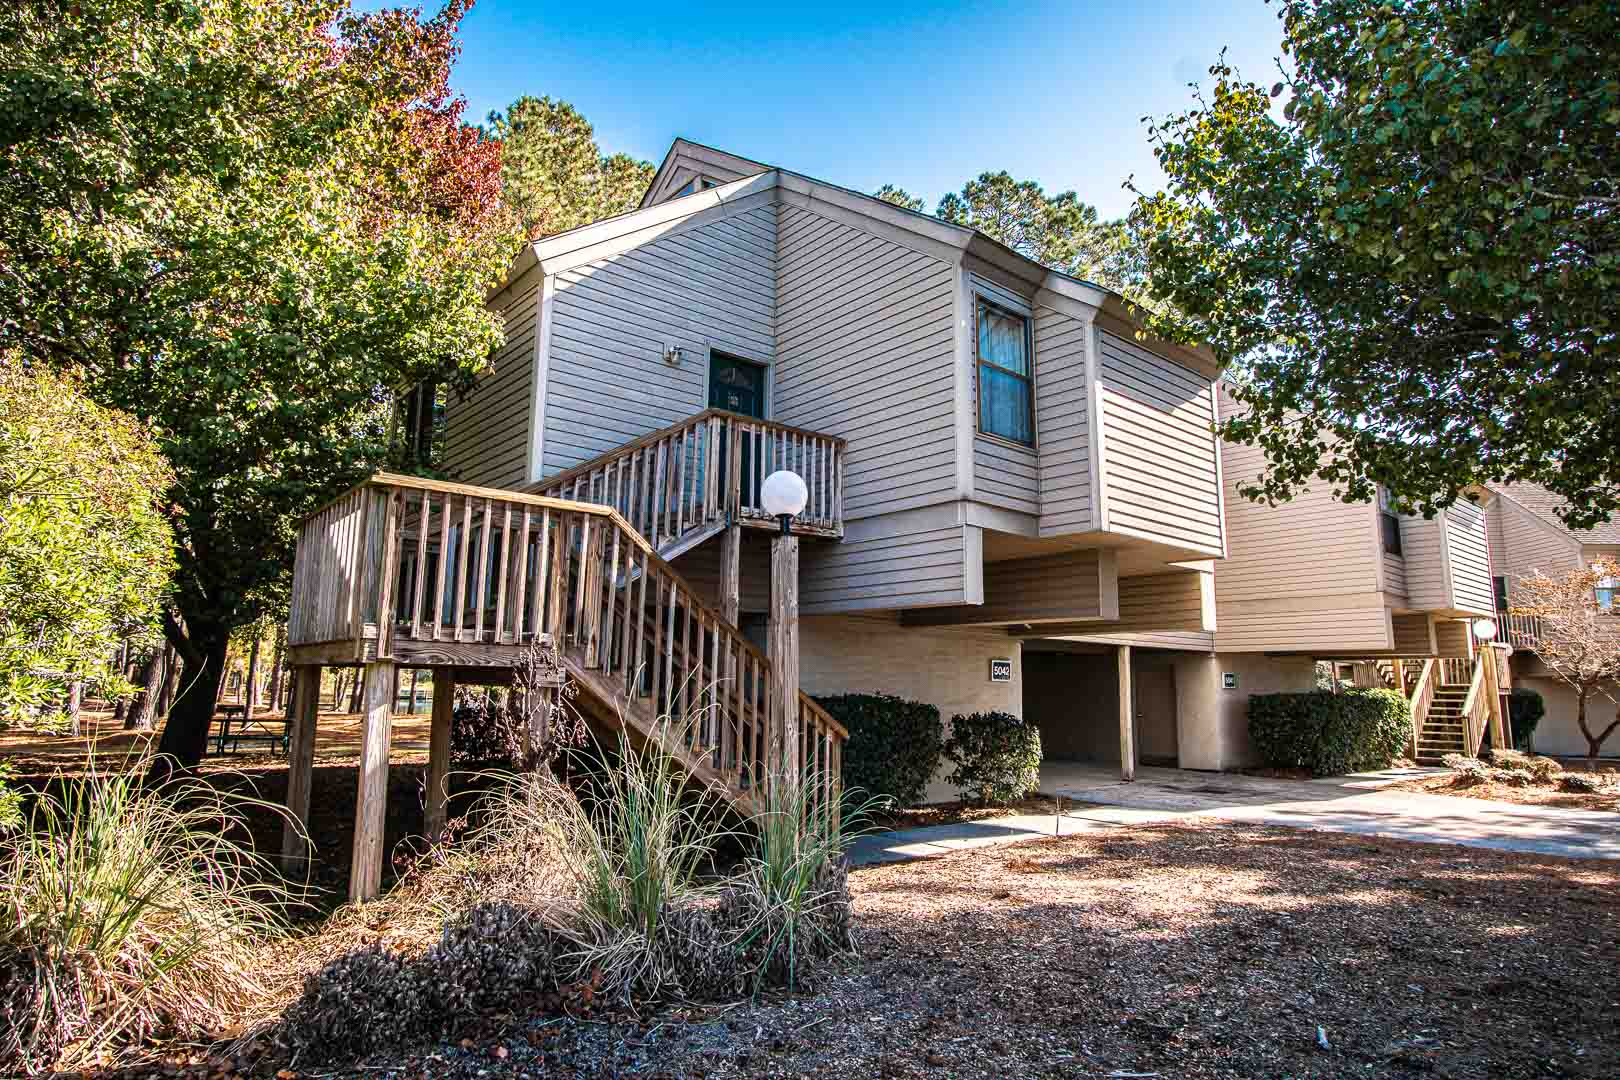 The outside of the units at VRI's Sandcastle Cove in New Bern, North Carolina.